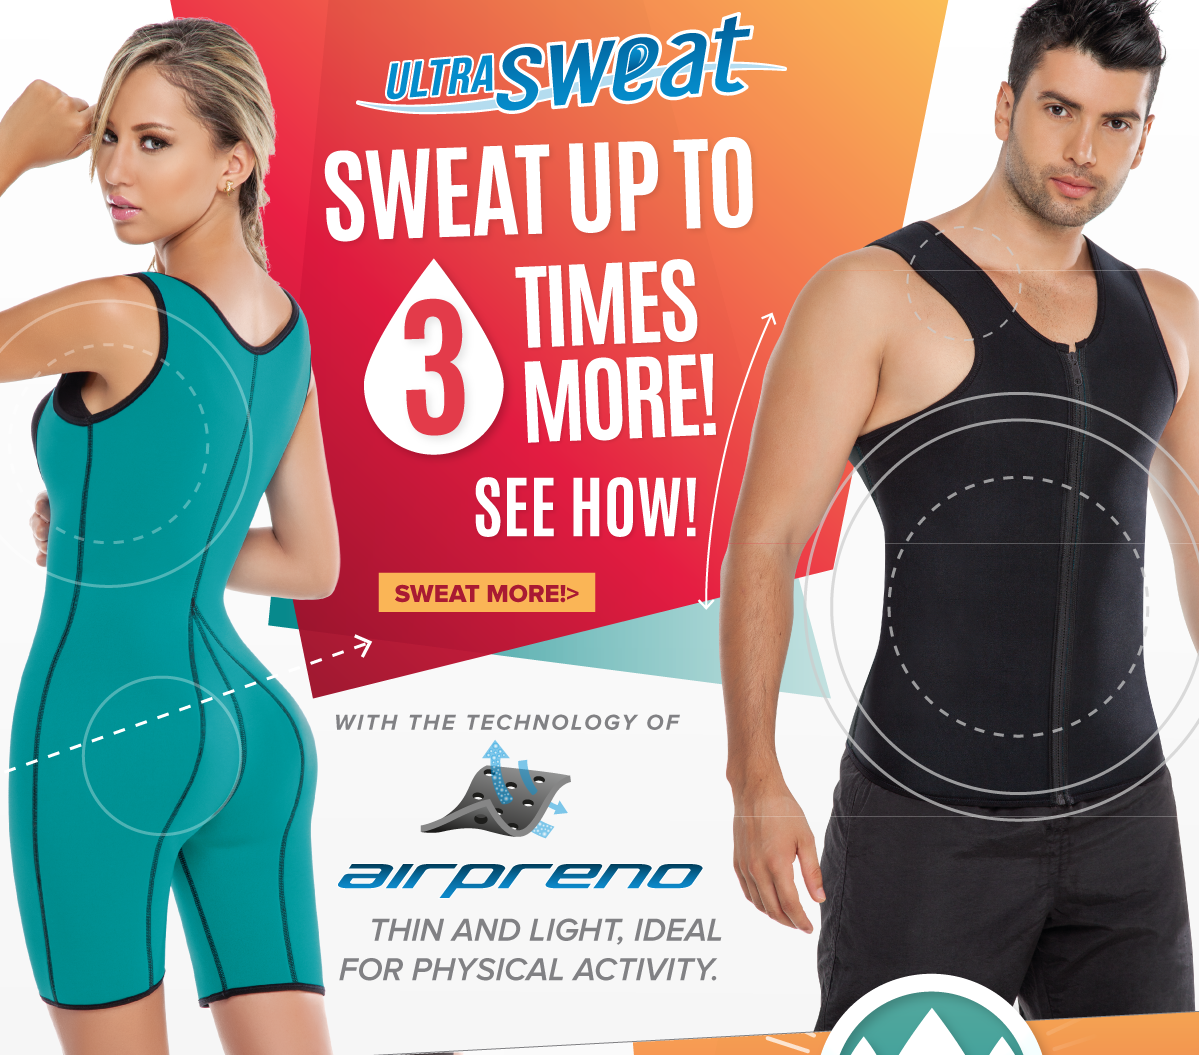 Discover Ultra Sweat Benefits